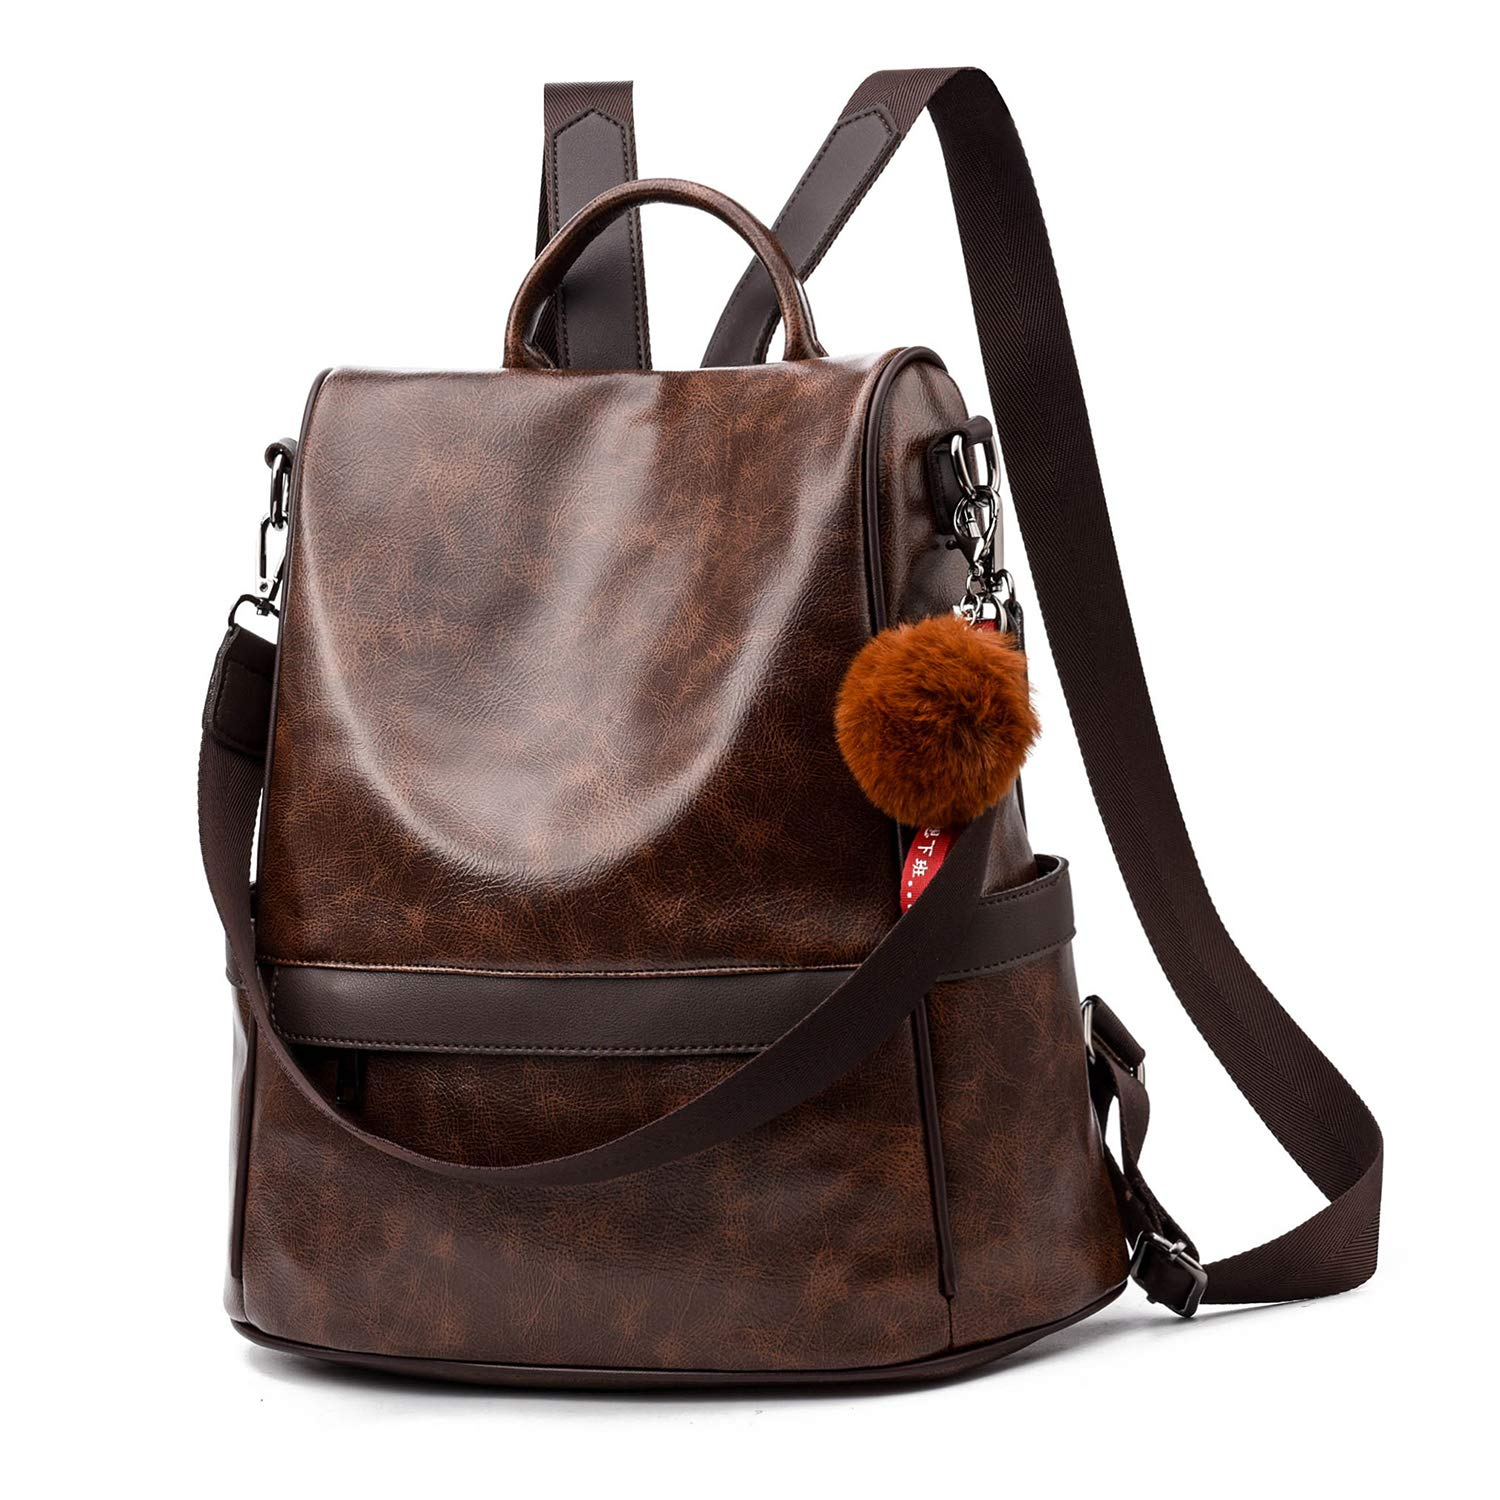 Women Backpack Purse PU Leather Anti-theft Casual Shoulder Bag Fashion Ladies Satchel Bags(Brown) by Cheruty